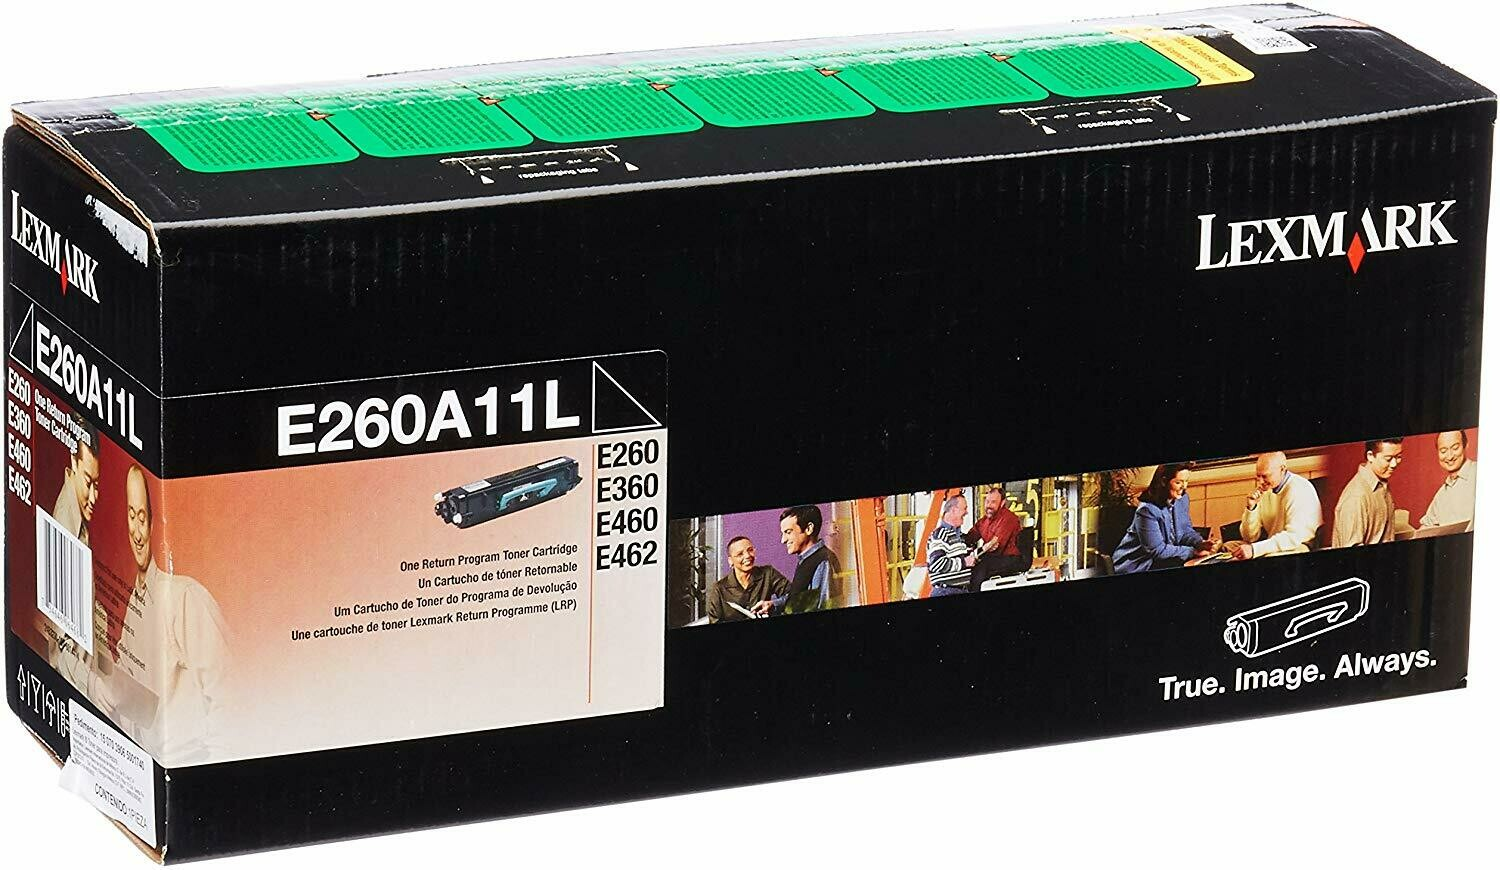 Lexmark / E260A11L Black Original LaserJet Toner Cartridge